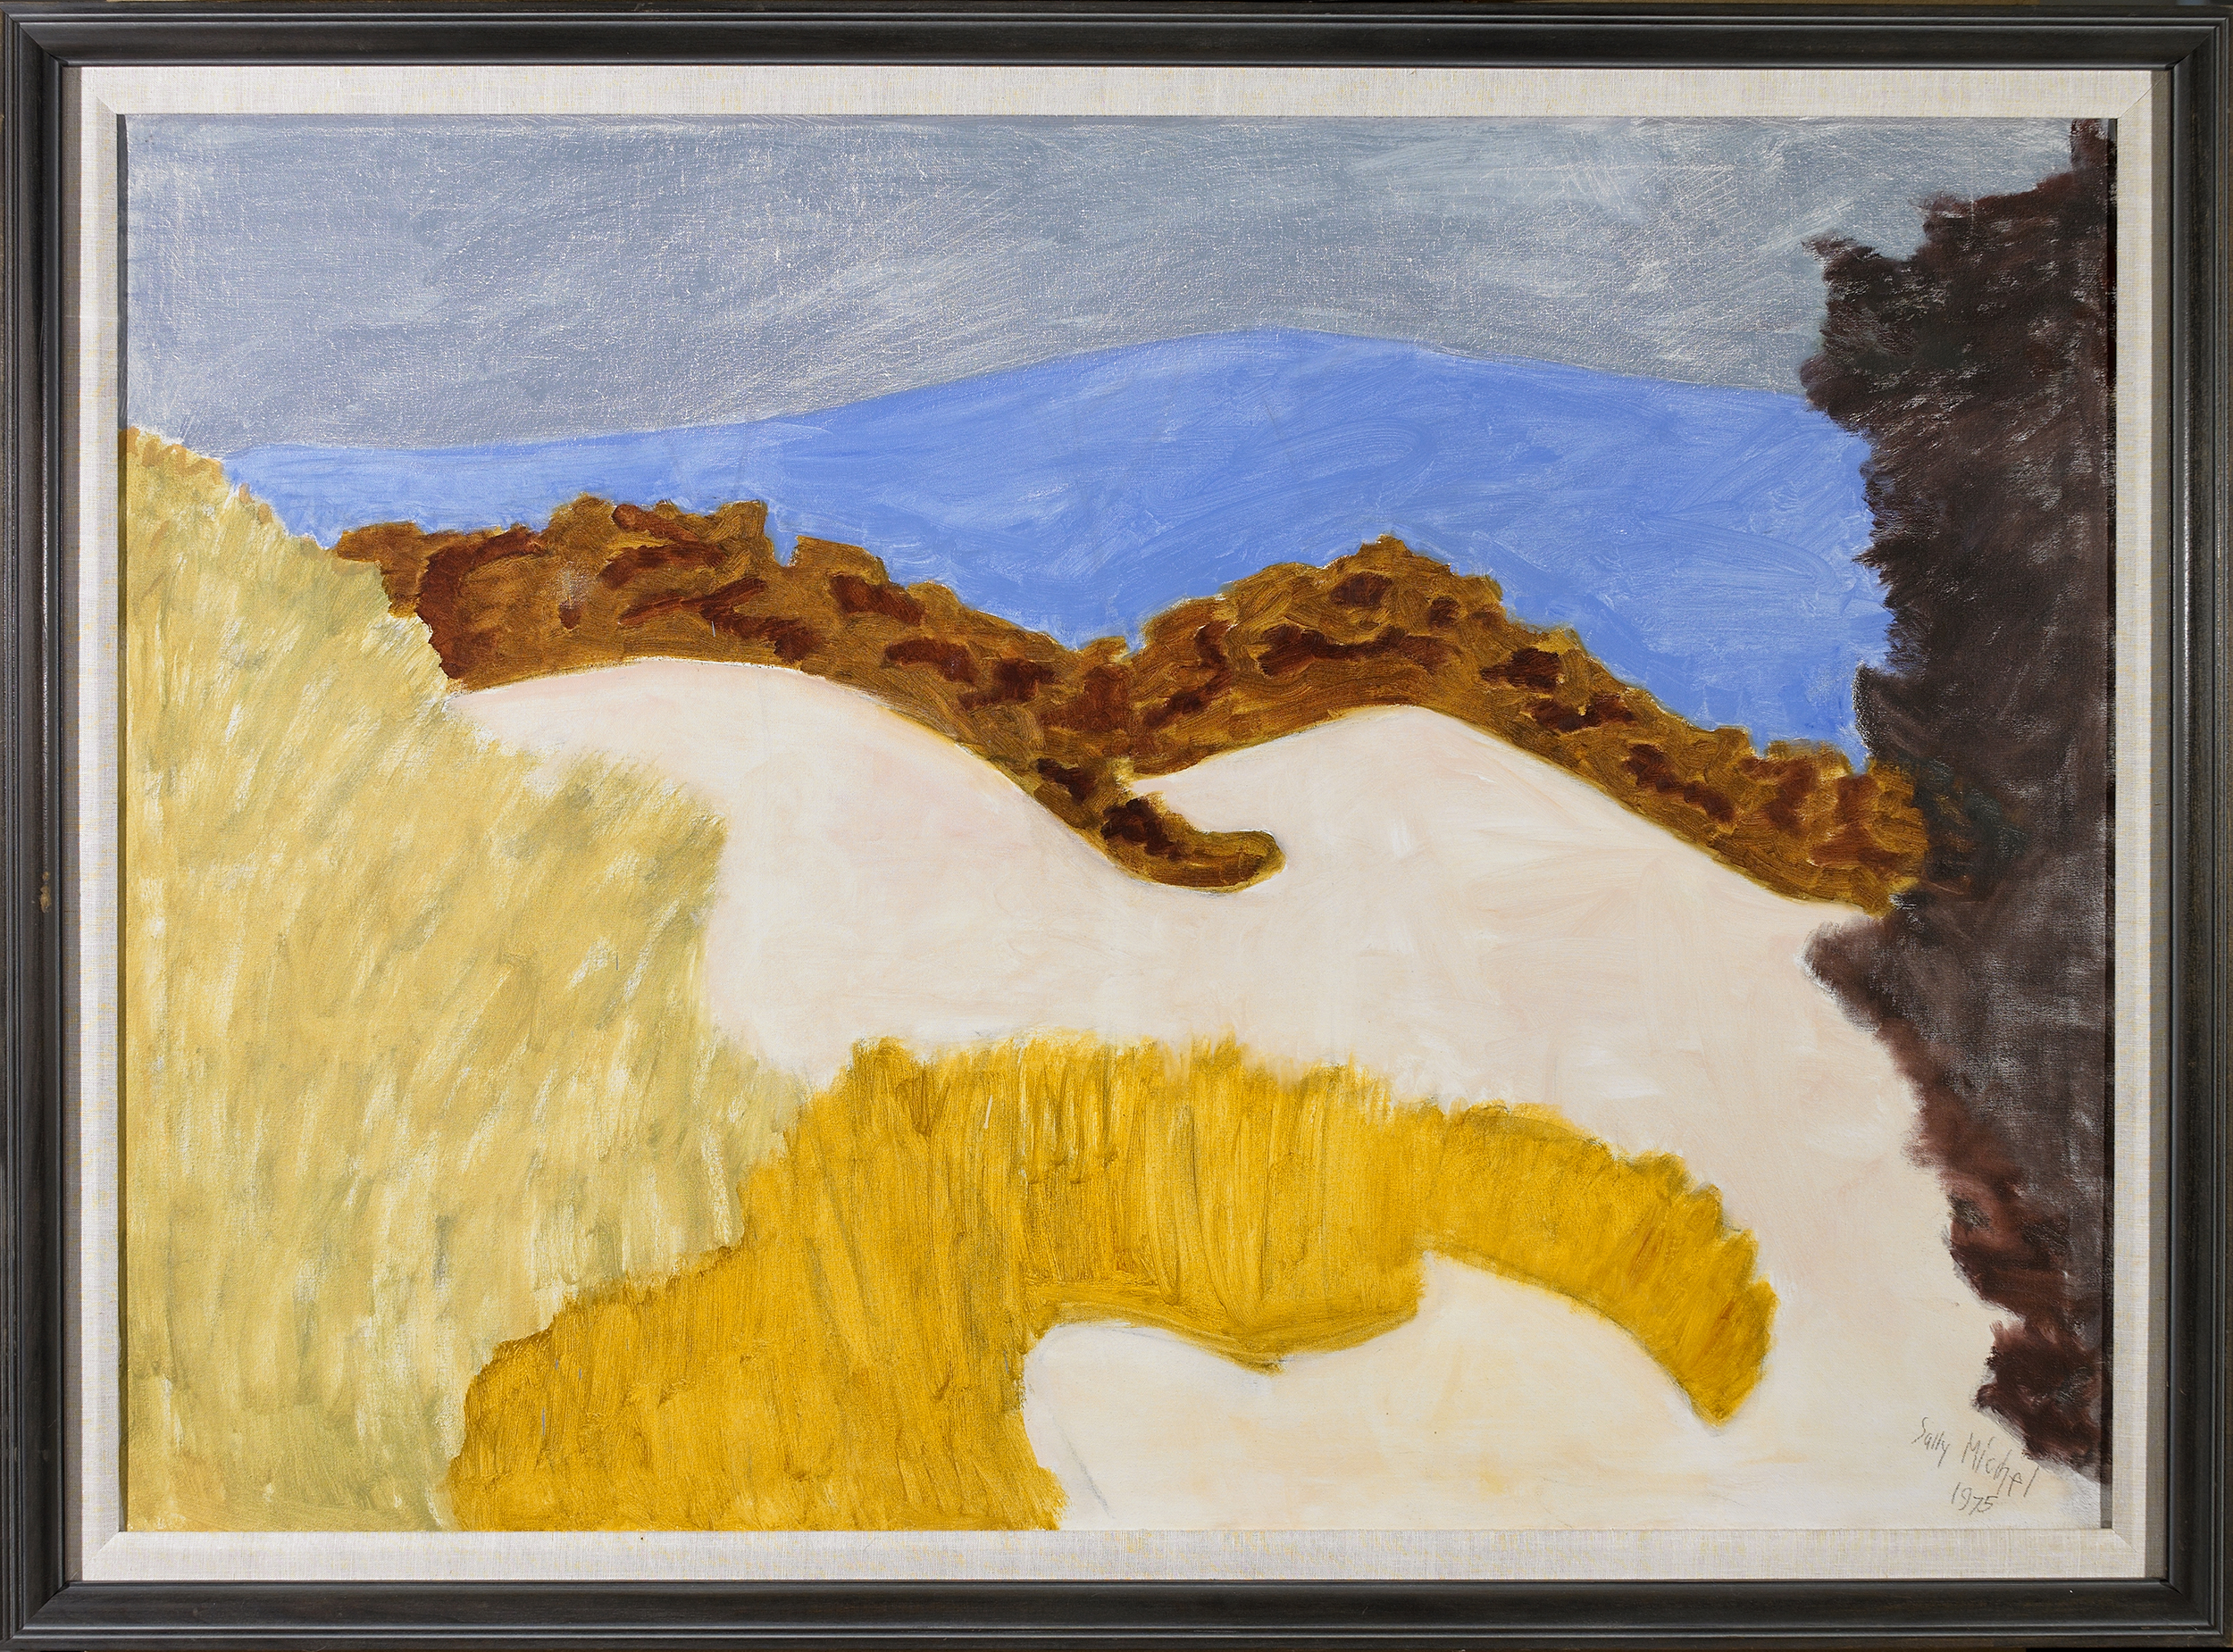 Autumn Hills,   Oil on canvas, 1975, 36 x 50 inches